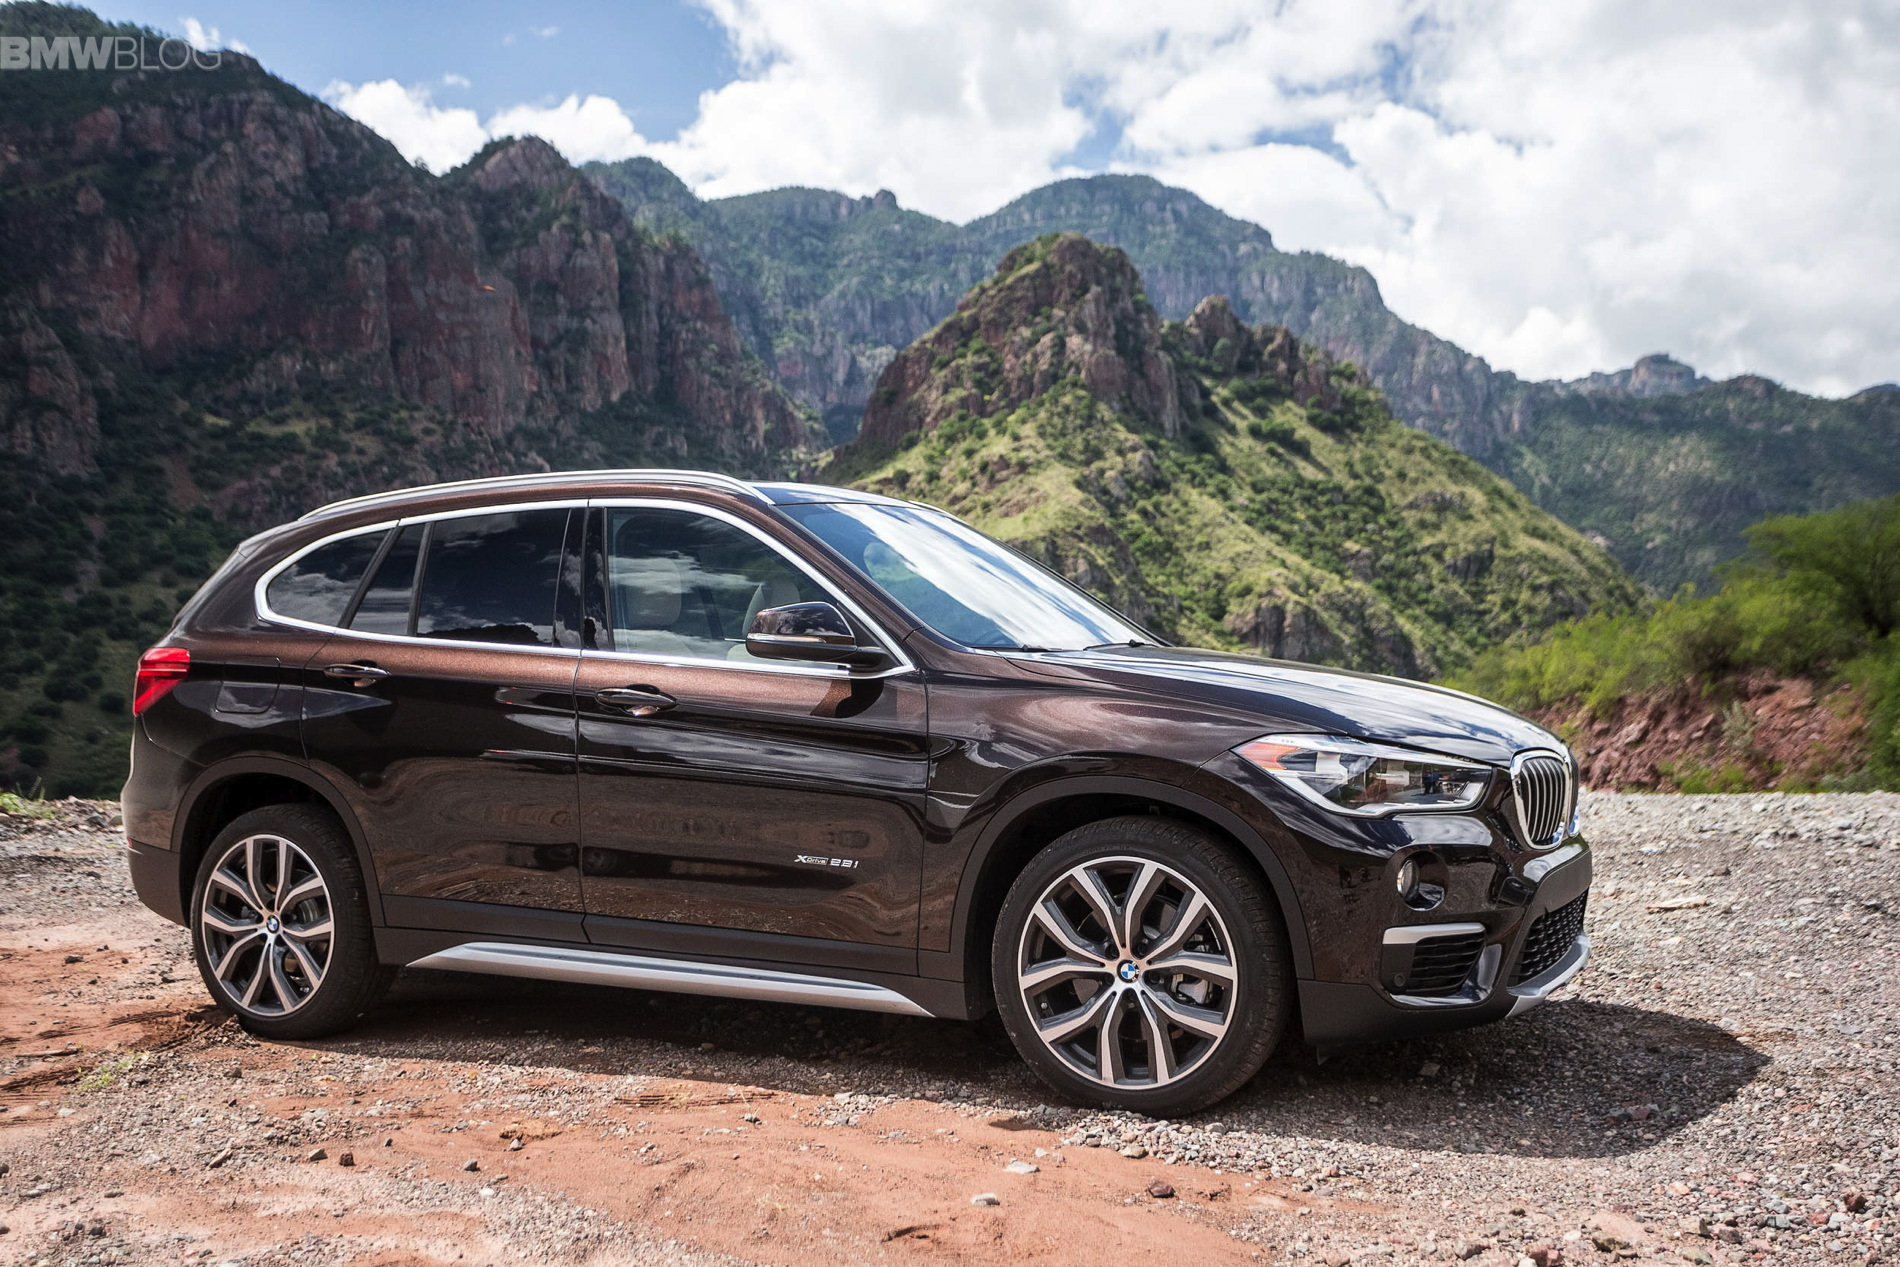 2016-bmw-X1-xDrive28i-test-drive-images-72